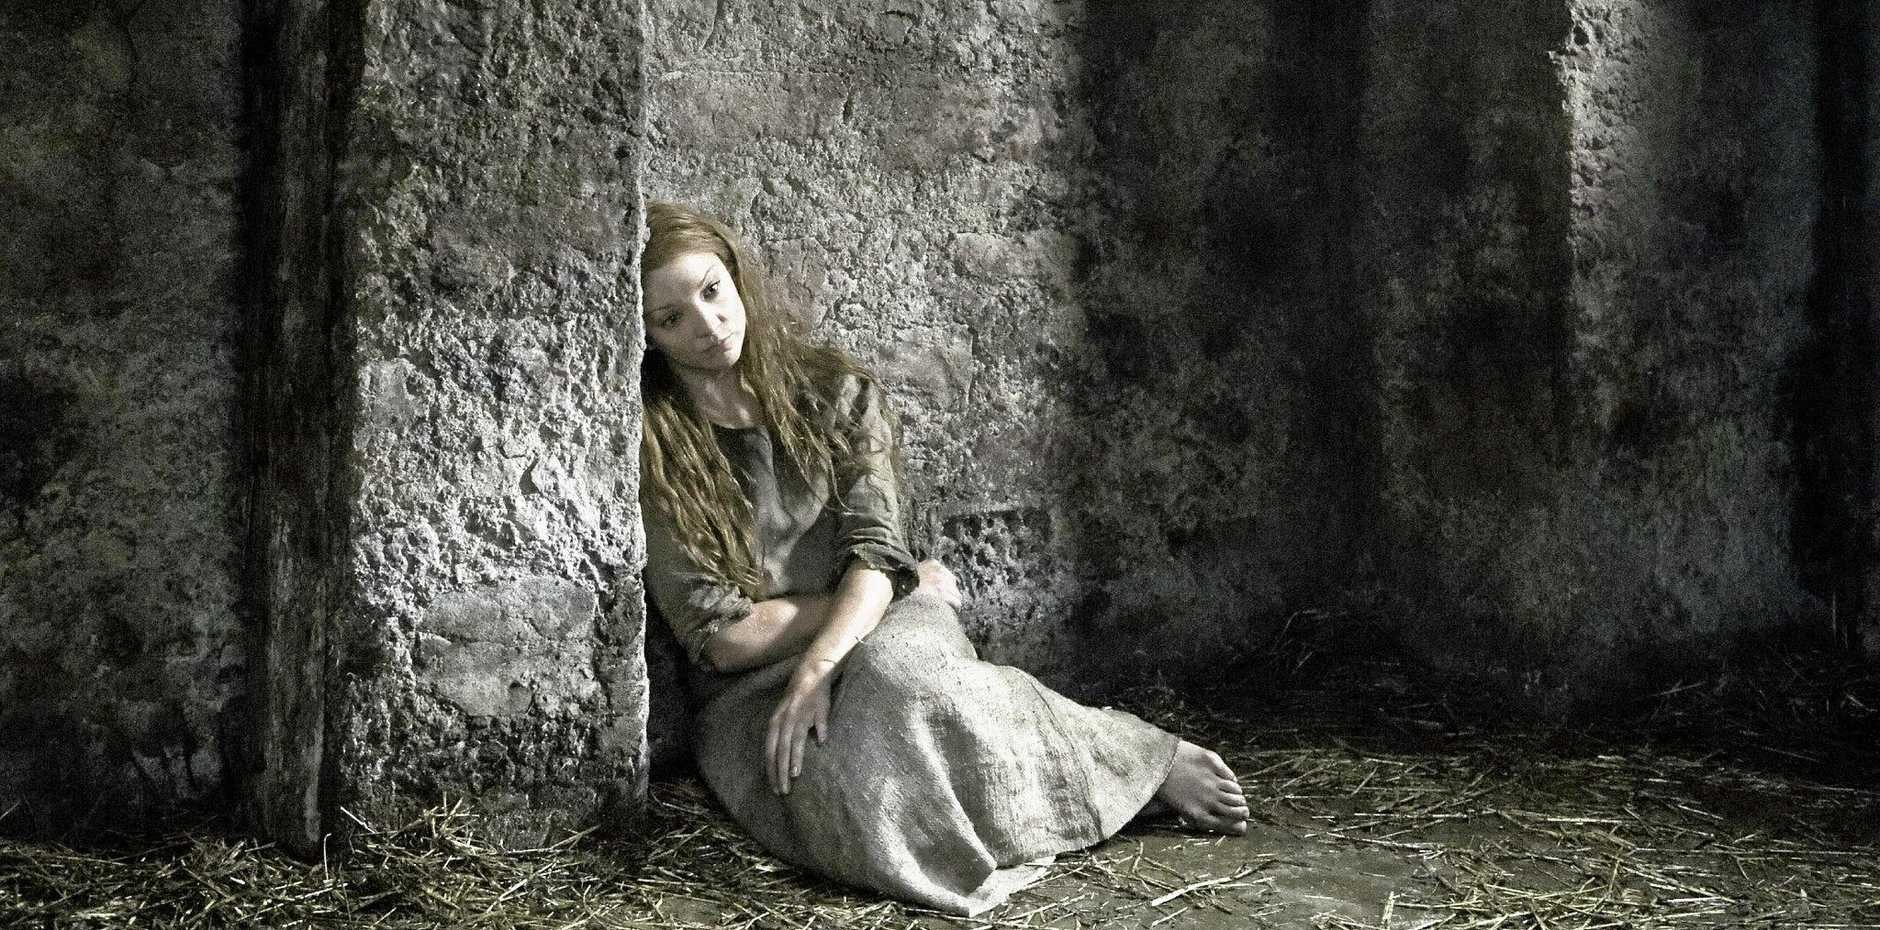 Natalie Dormer in a scene from season six episode four of Game of Thrones.